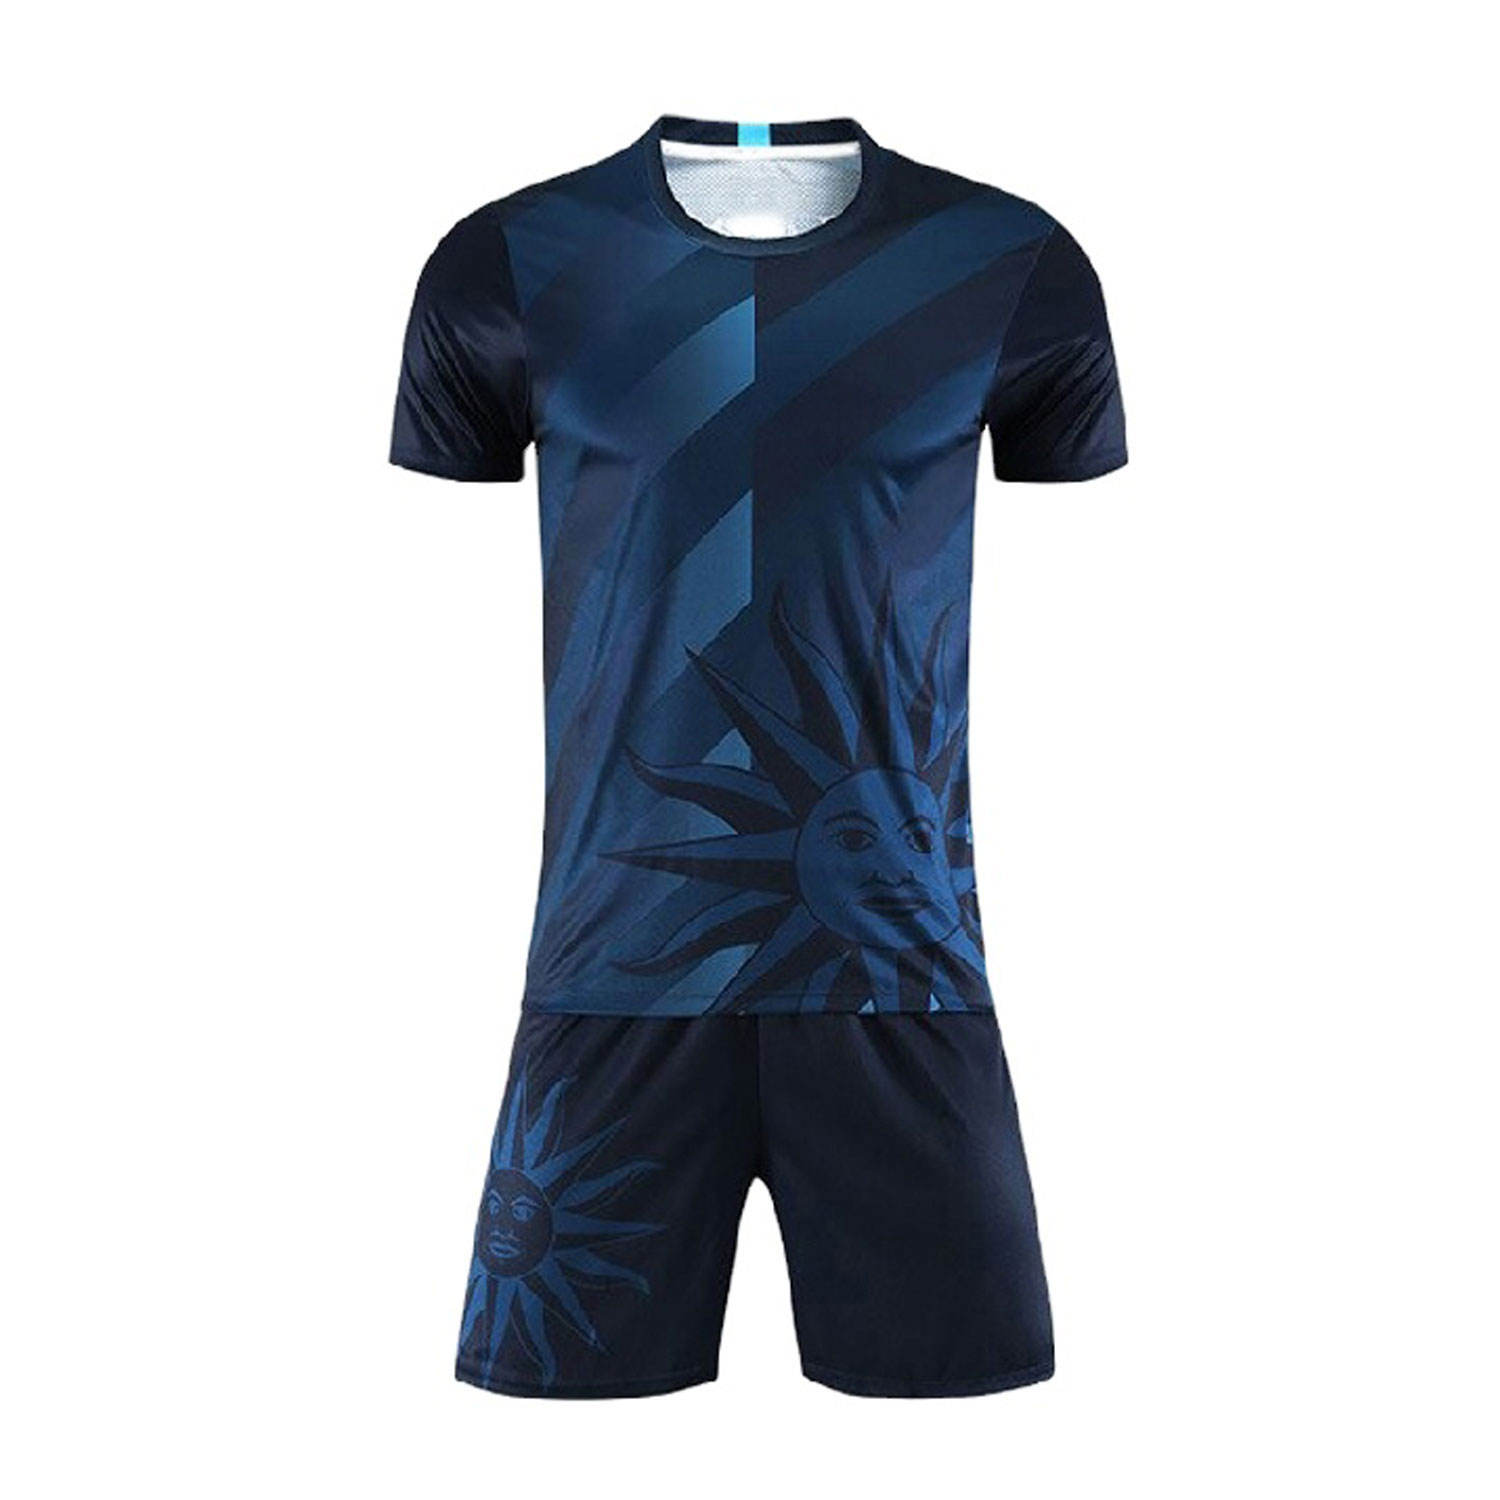 Uniform <span class=keywords><strong>Voetbal</strong></span> Custom Made Hoge Kwaliteit Jersey Teal Polyester <span class=keywords><strong>Club</strong></span> Uniform Groene Voetbalshirts <span class=keywords><strong>Kits</strong></span>